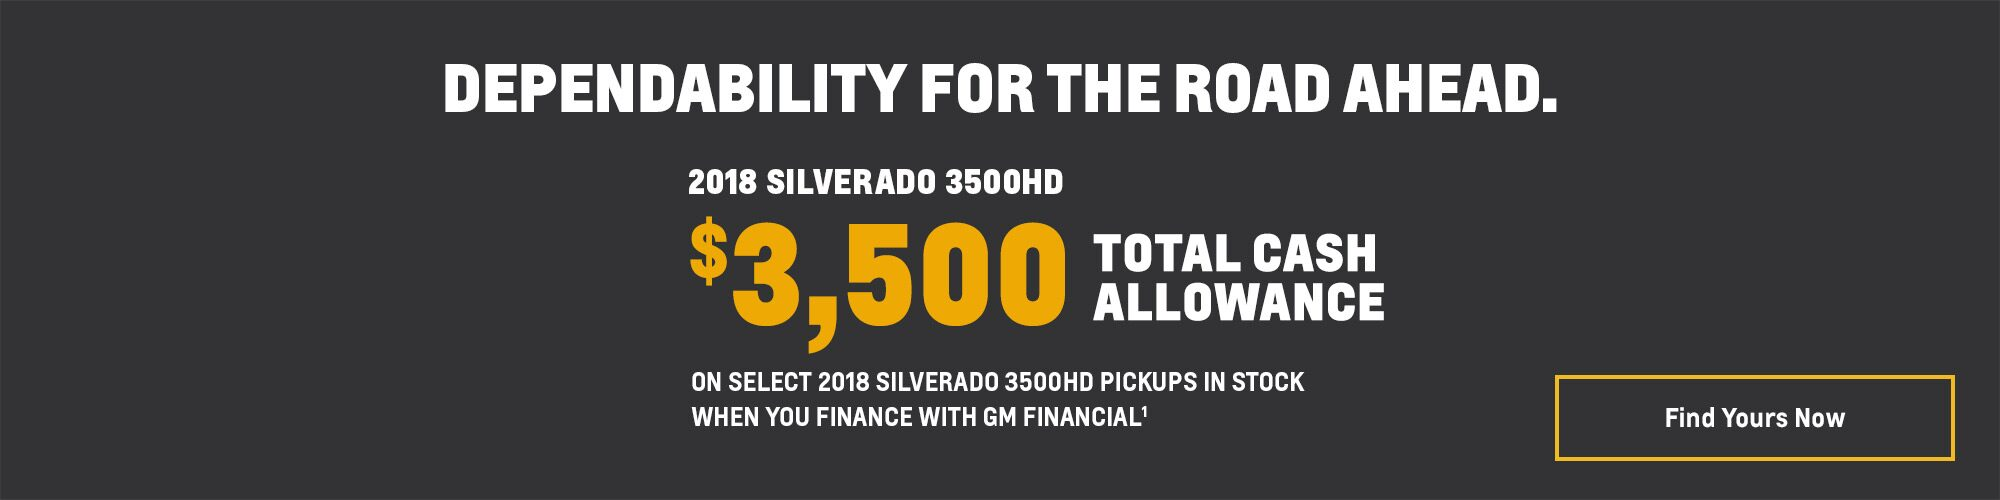 2018 Silverado 3500HD Pickup Truck Deals and Offers